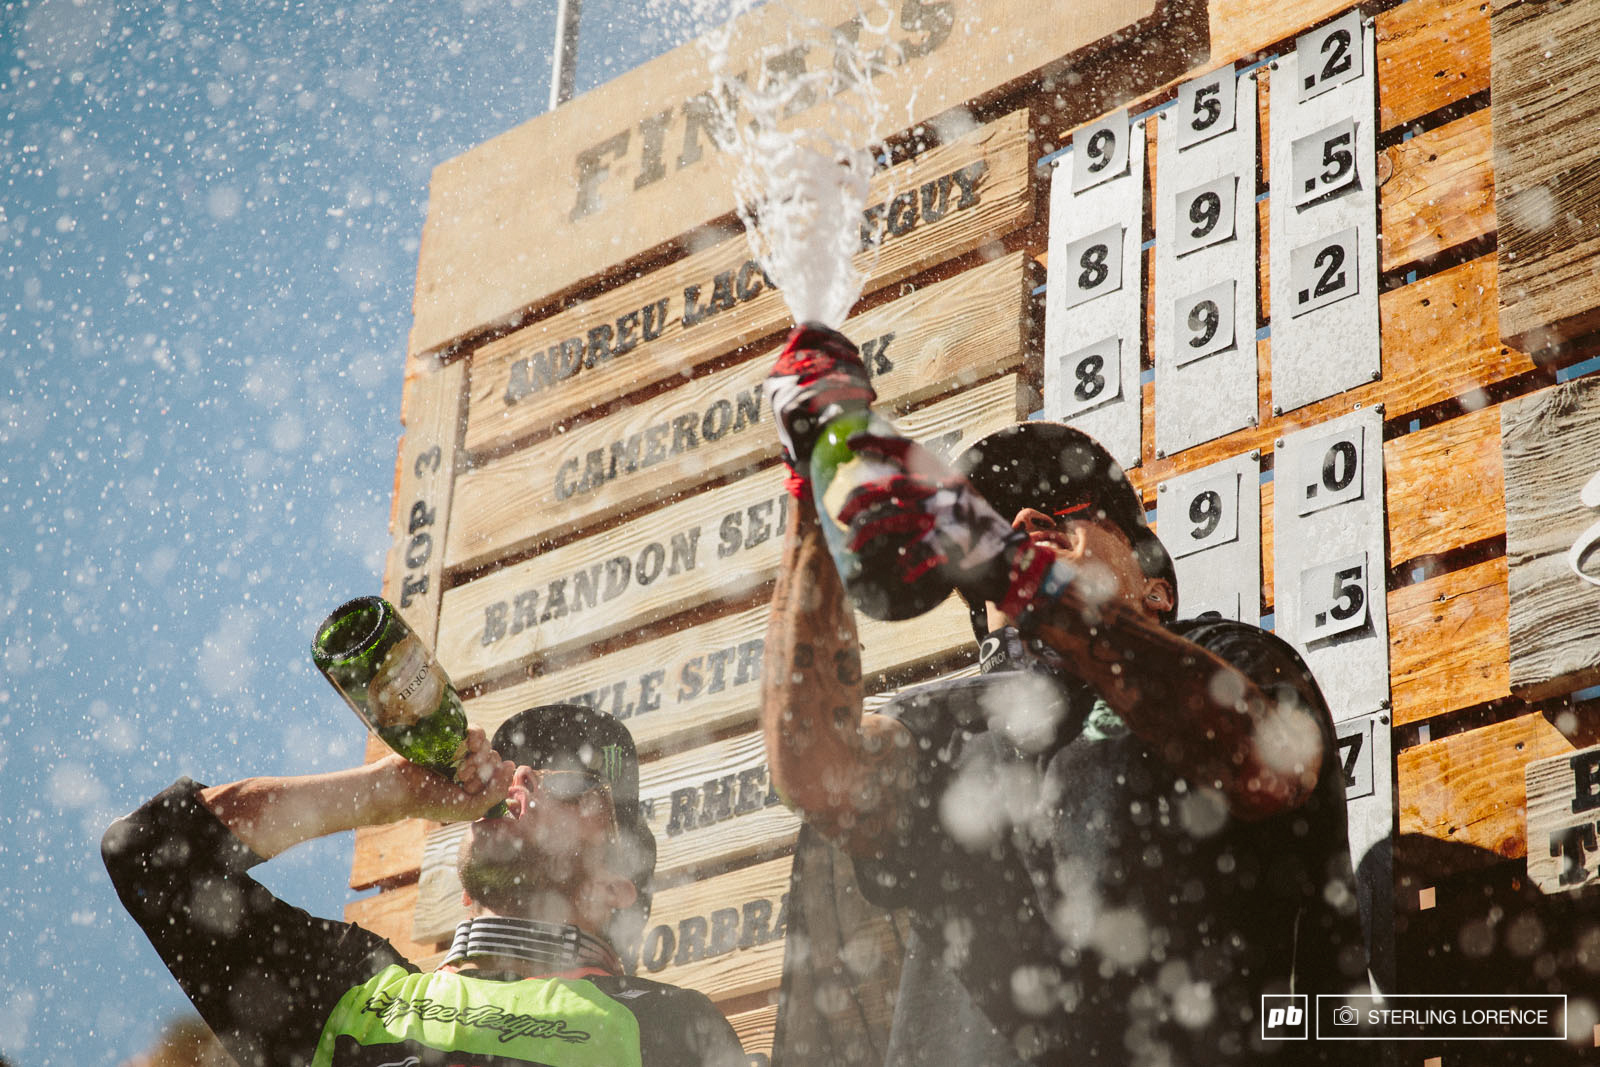 Zink, Lacondeguy and Semenuk on the podium at RedBull Rampage 2014.